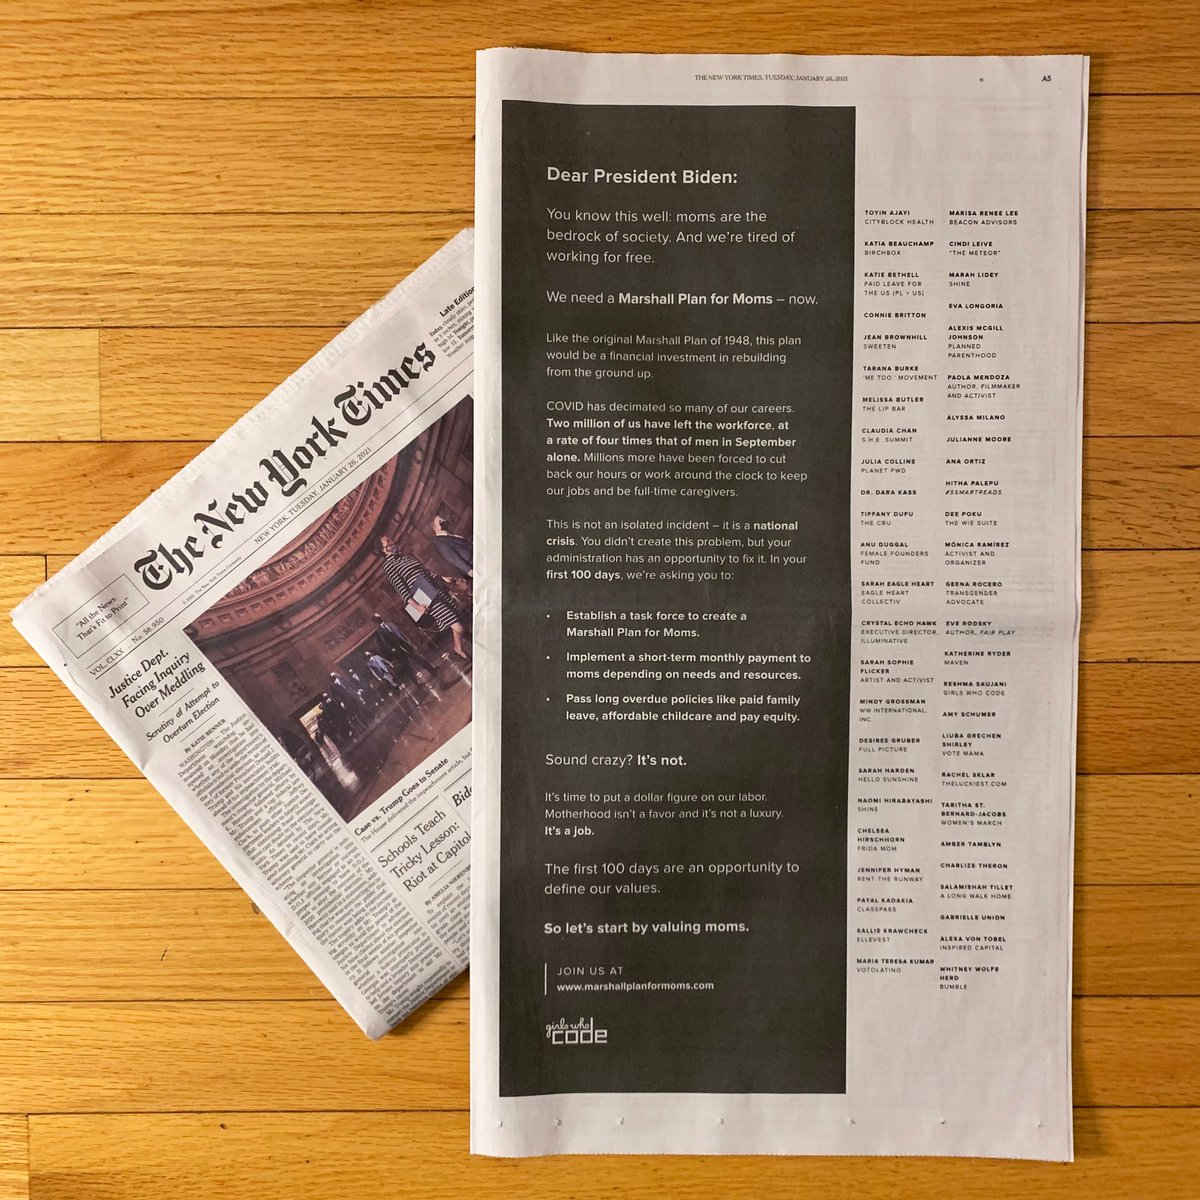 Today, @GirlsWhoCode took out a full-page ad in the @nytimes calling on the Biden administration to support moms by implementing a #MarshallPlanForMoms in the first 100 days. 50 prominent women signed on to our letter.  Take action and add your name: